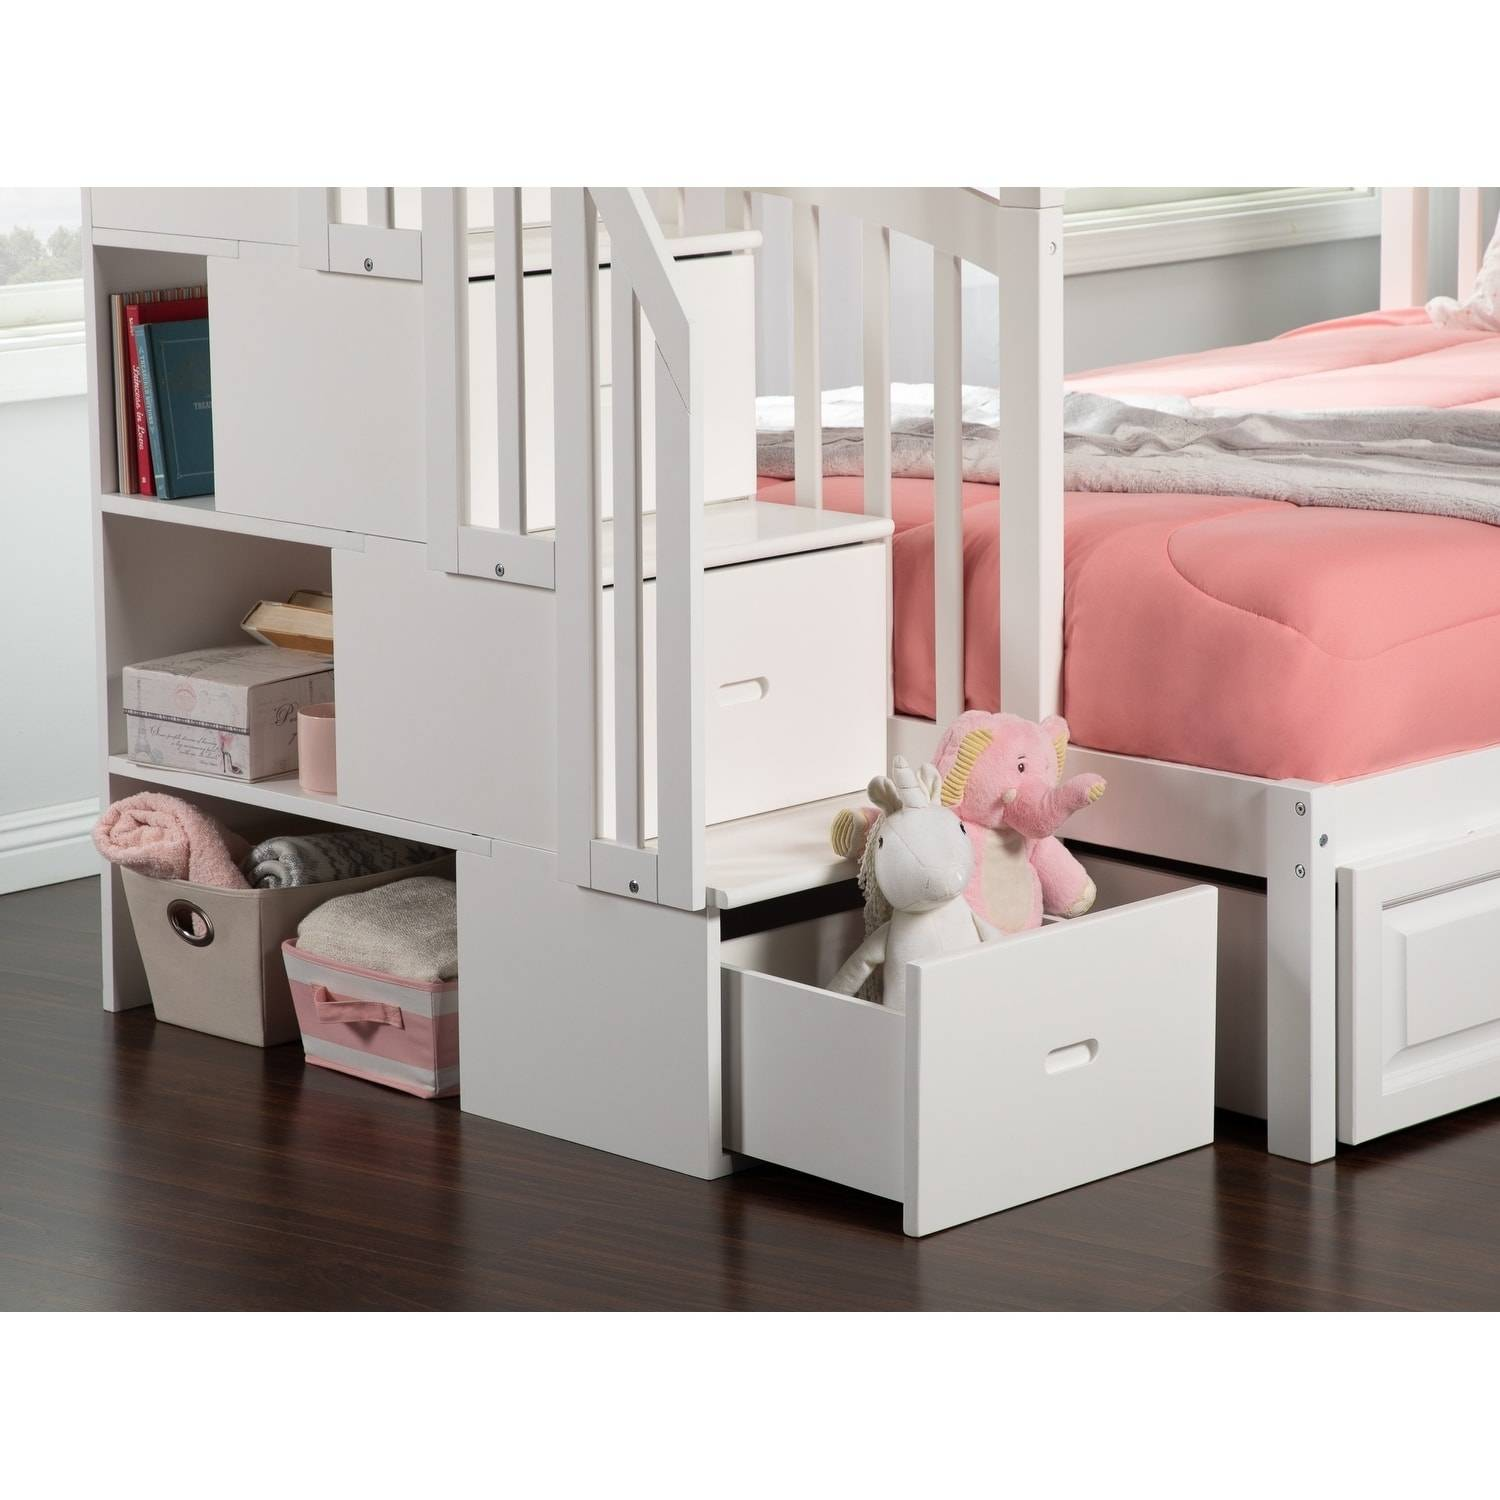 Westbrook Staircase Bunk Twin over Full with 2 Urban Bed Drawers in White ad 584e 4c7d 8b51 fb87d15e9113